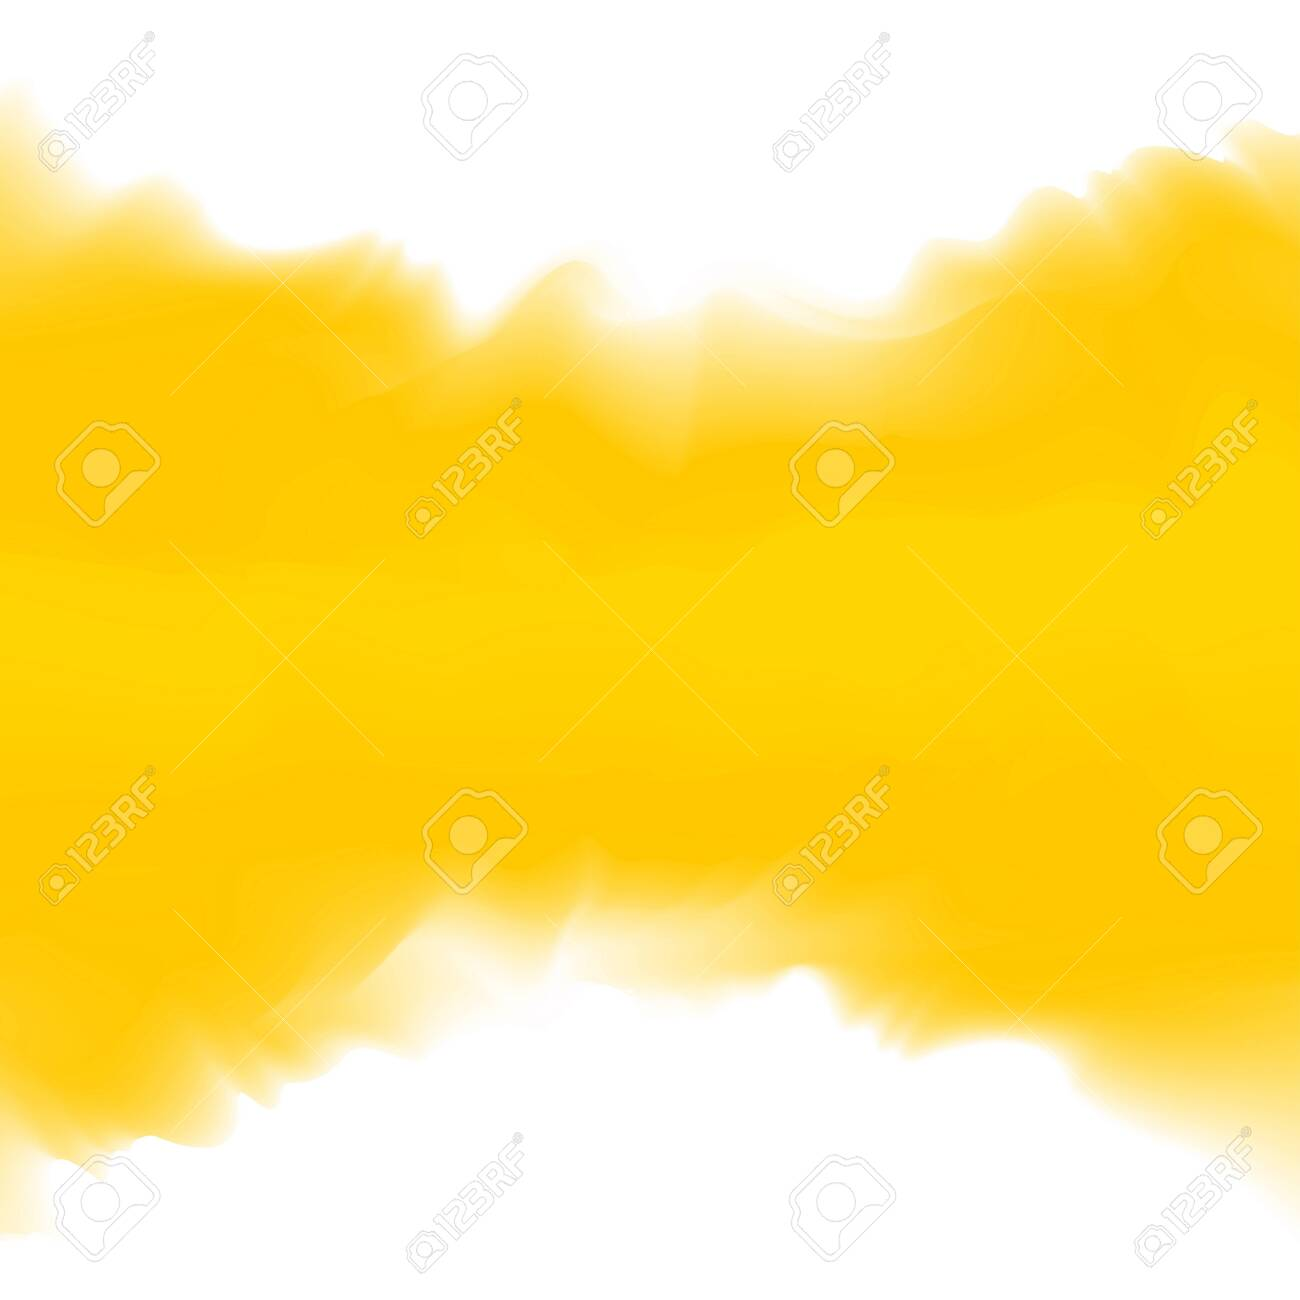 illustration yellow color soft in concept water color art style, abstract texture yellow colors painting art brush watercolor for background card and banner advertising, water color digital painting - 128699800